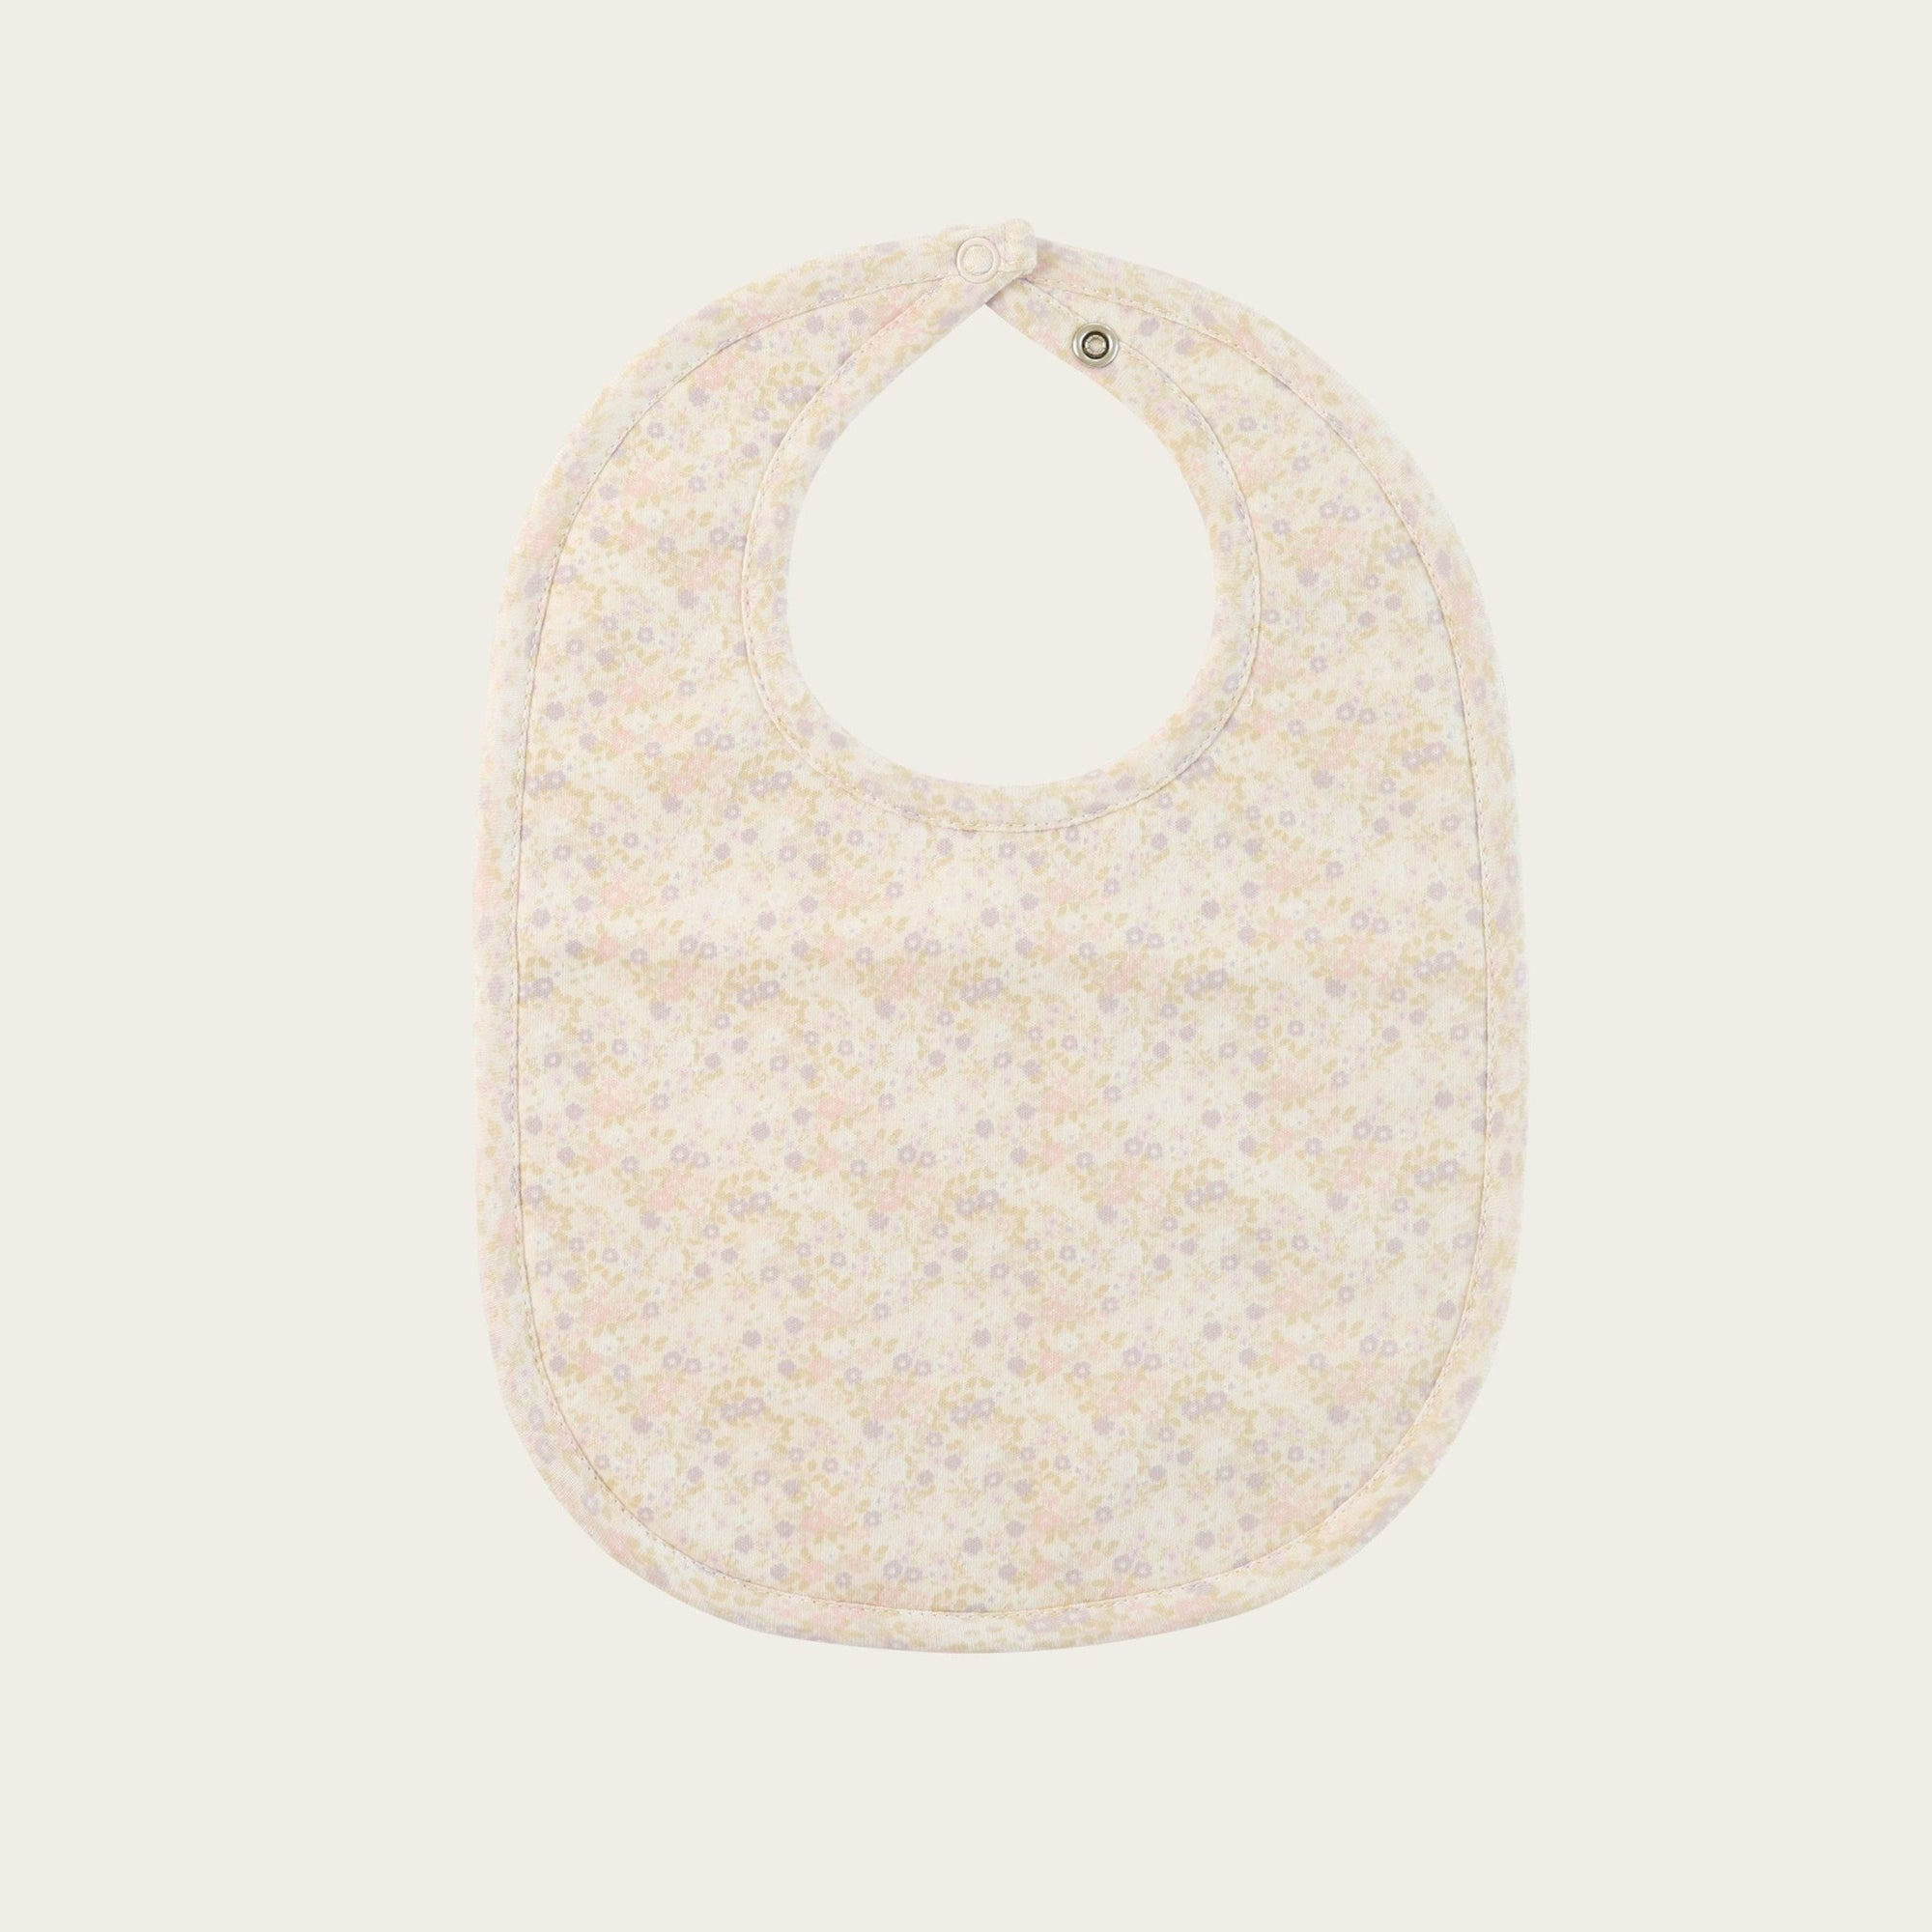 Forget Me Not Bib